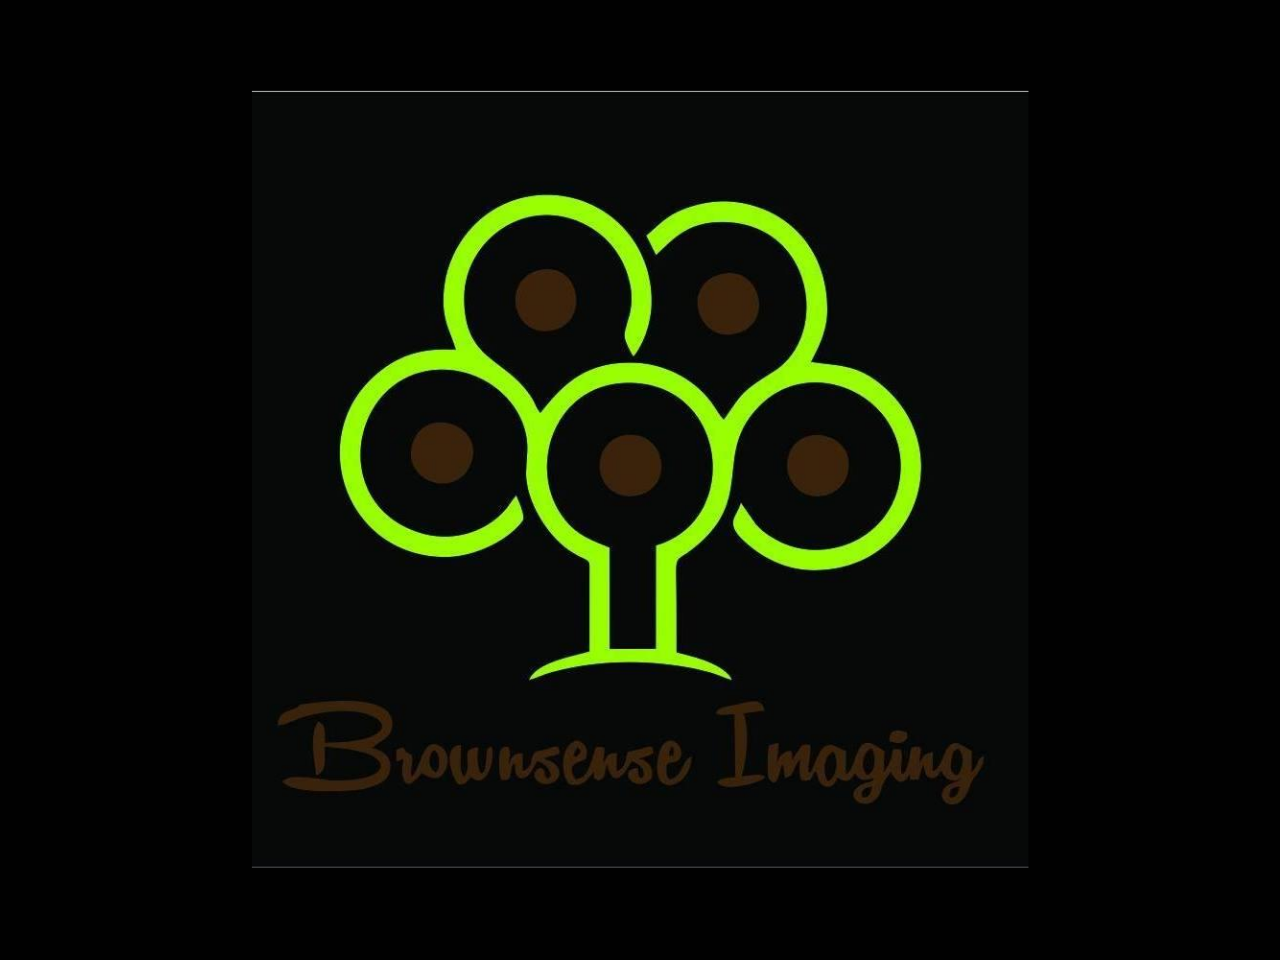 Brownsense Imaging